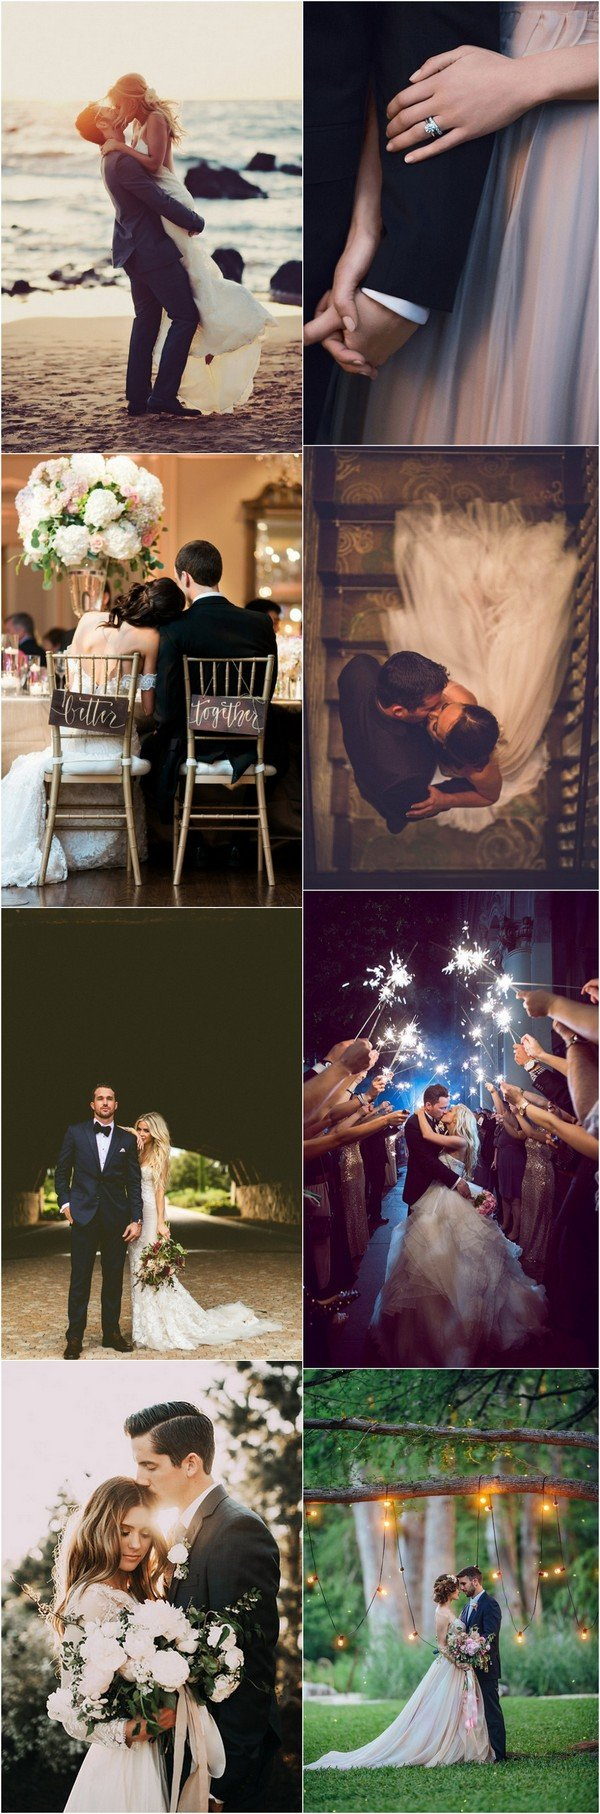 romantic bride and groom wedding photo inspiration